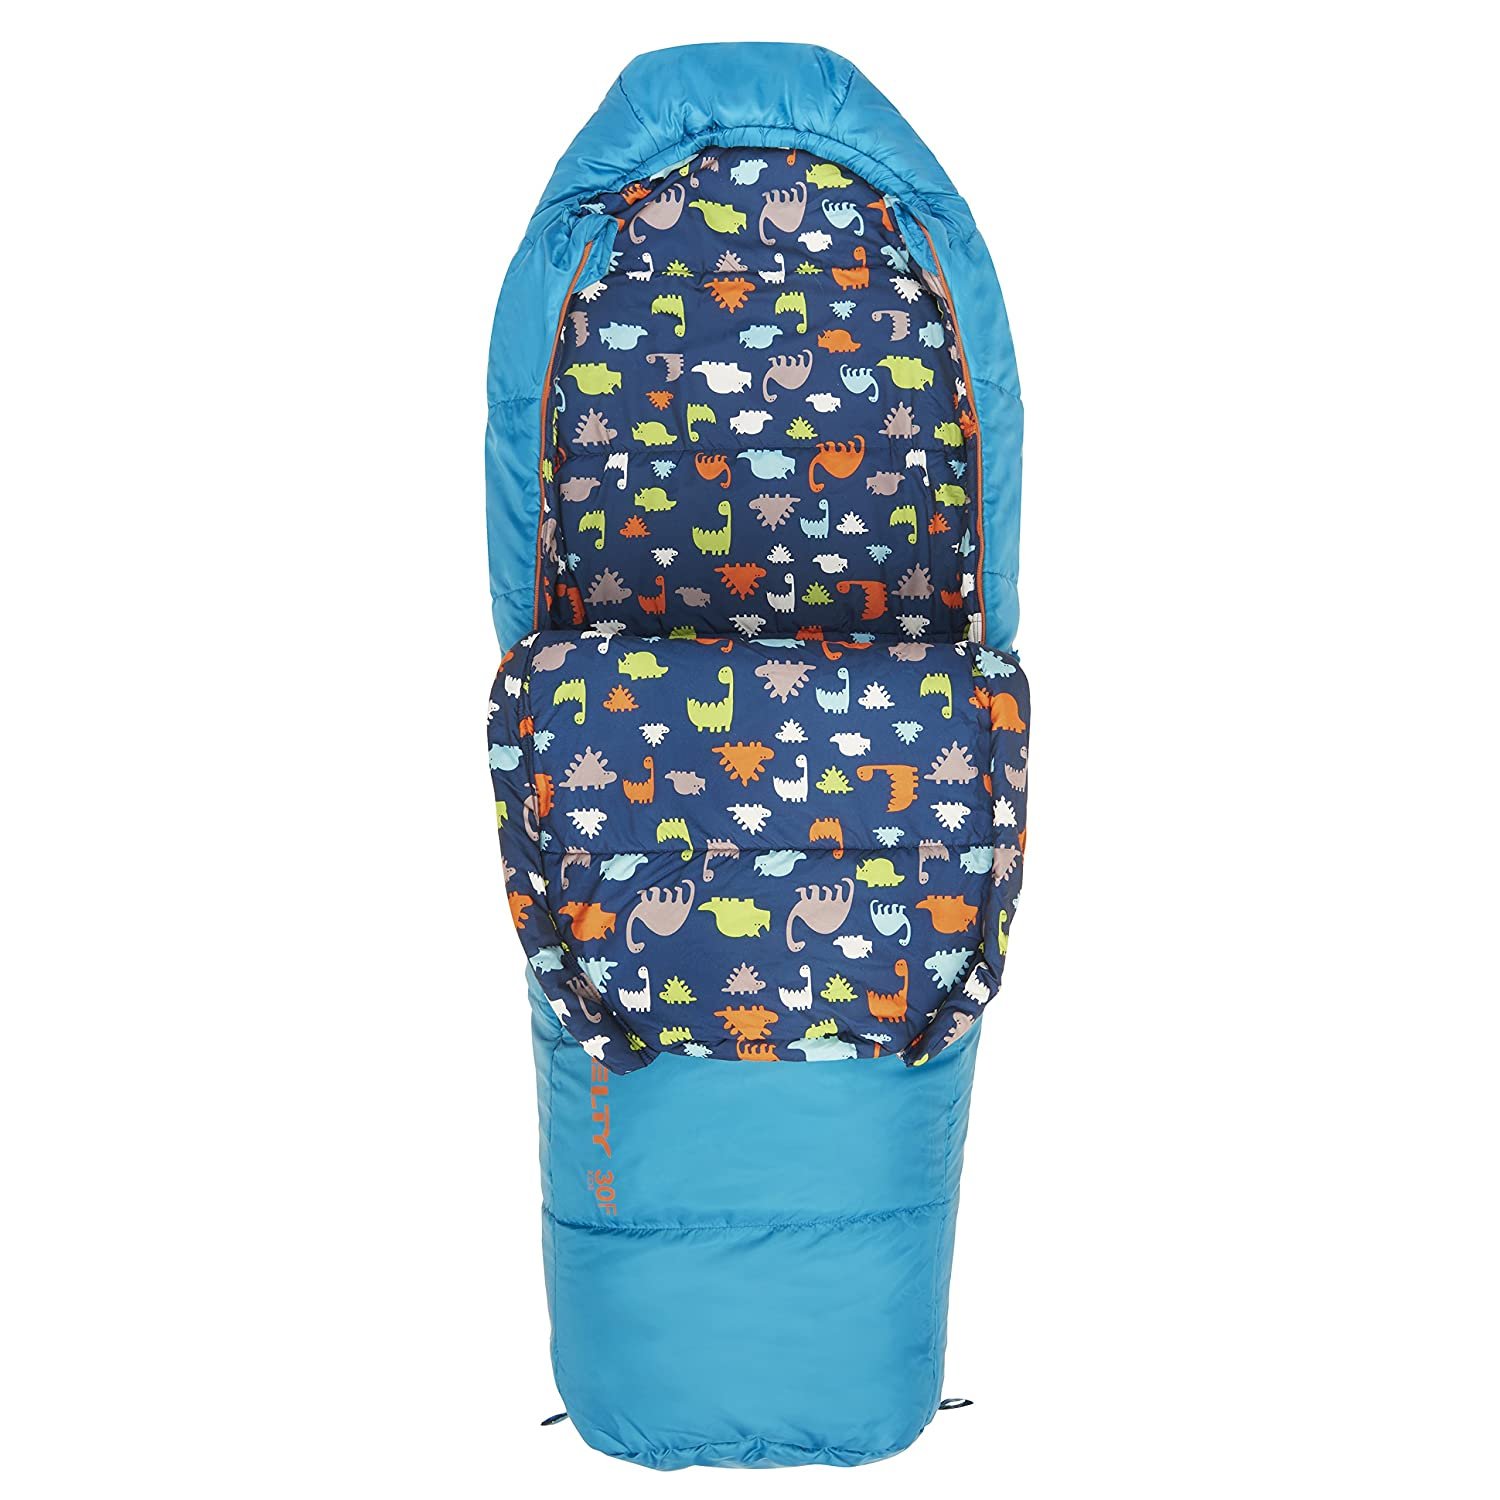 Kelty Girls Woobie 30 Deg Short RH Sleeping Bag